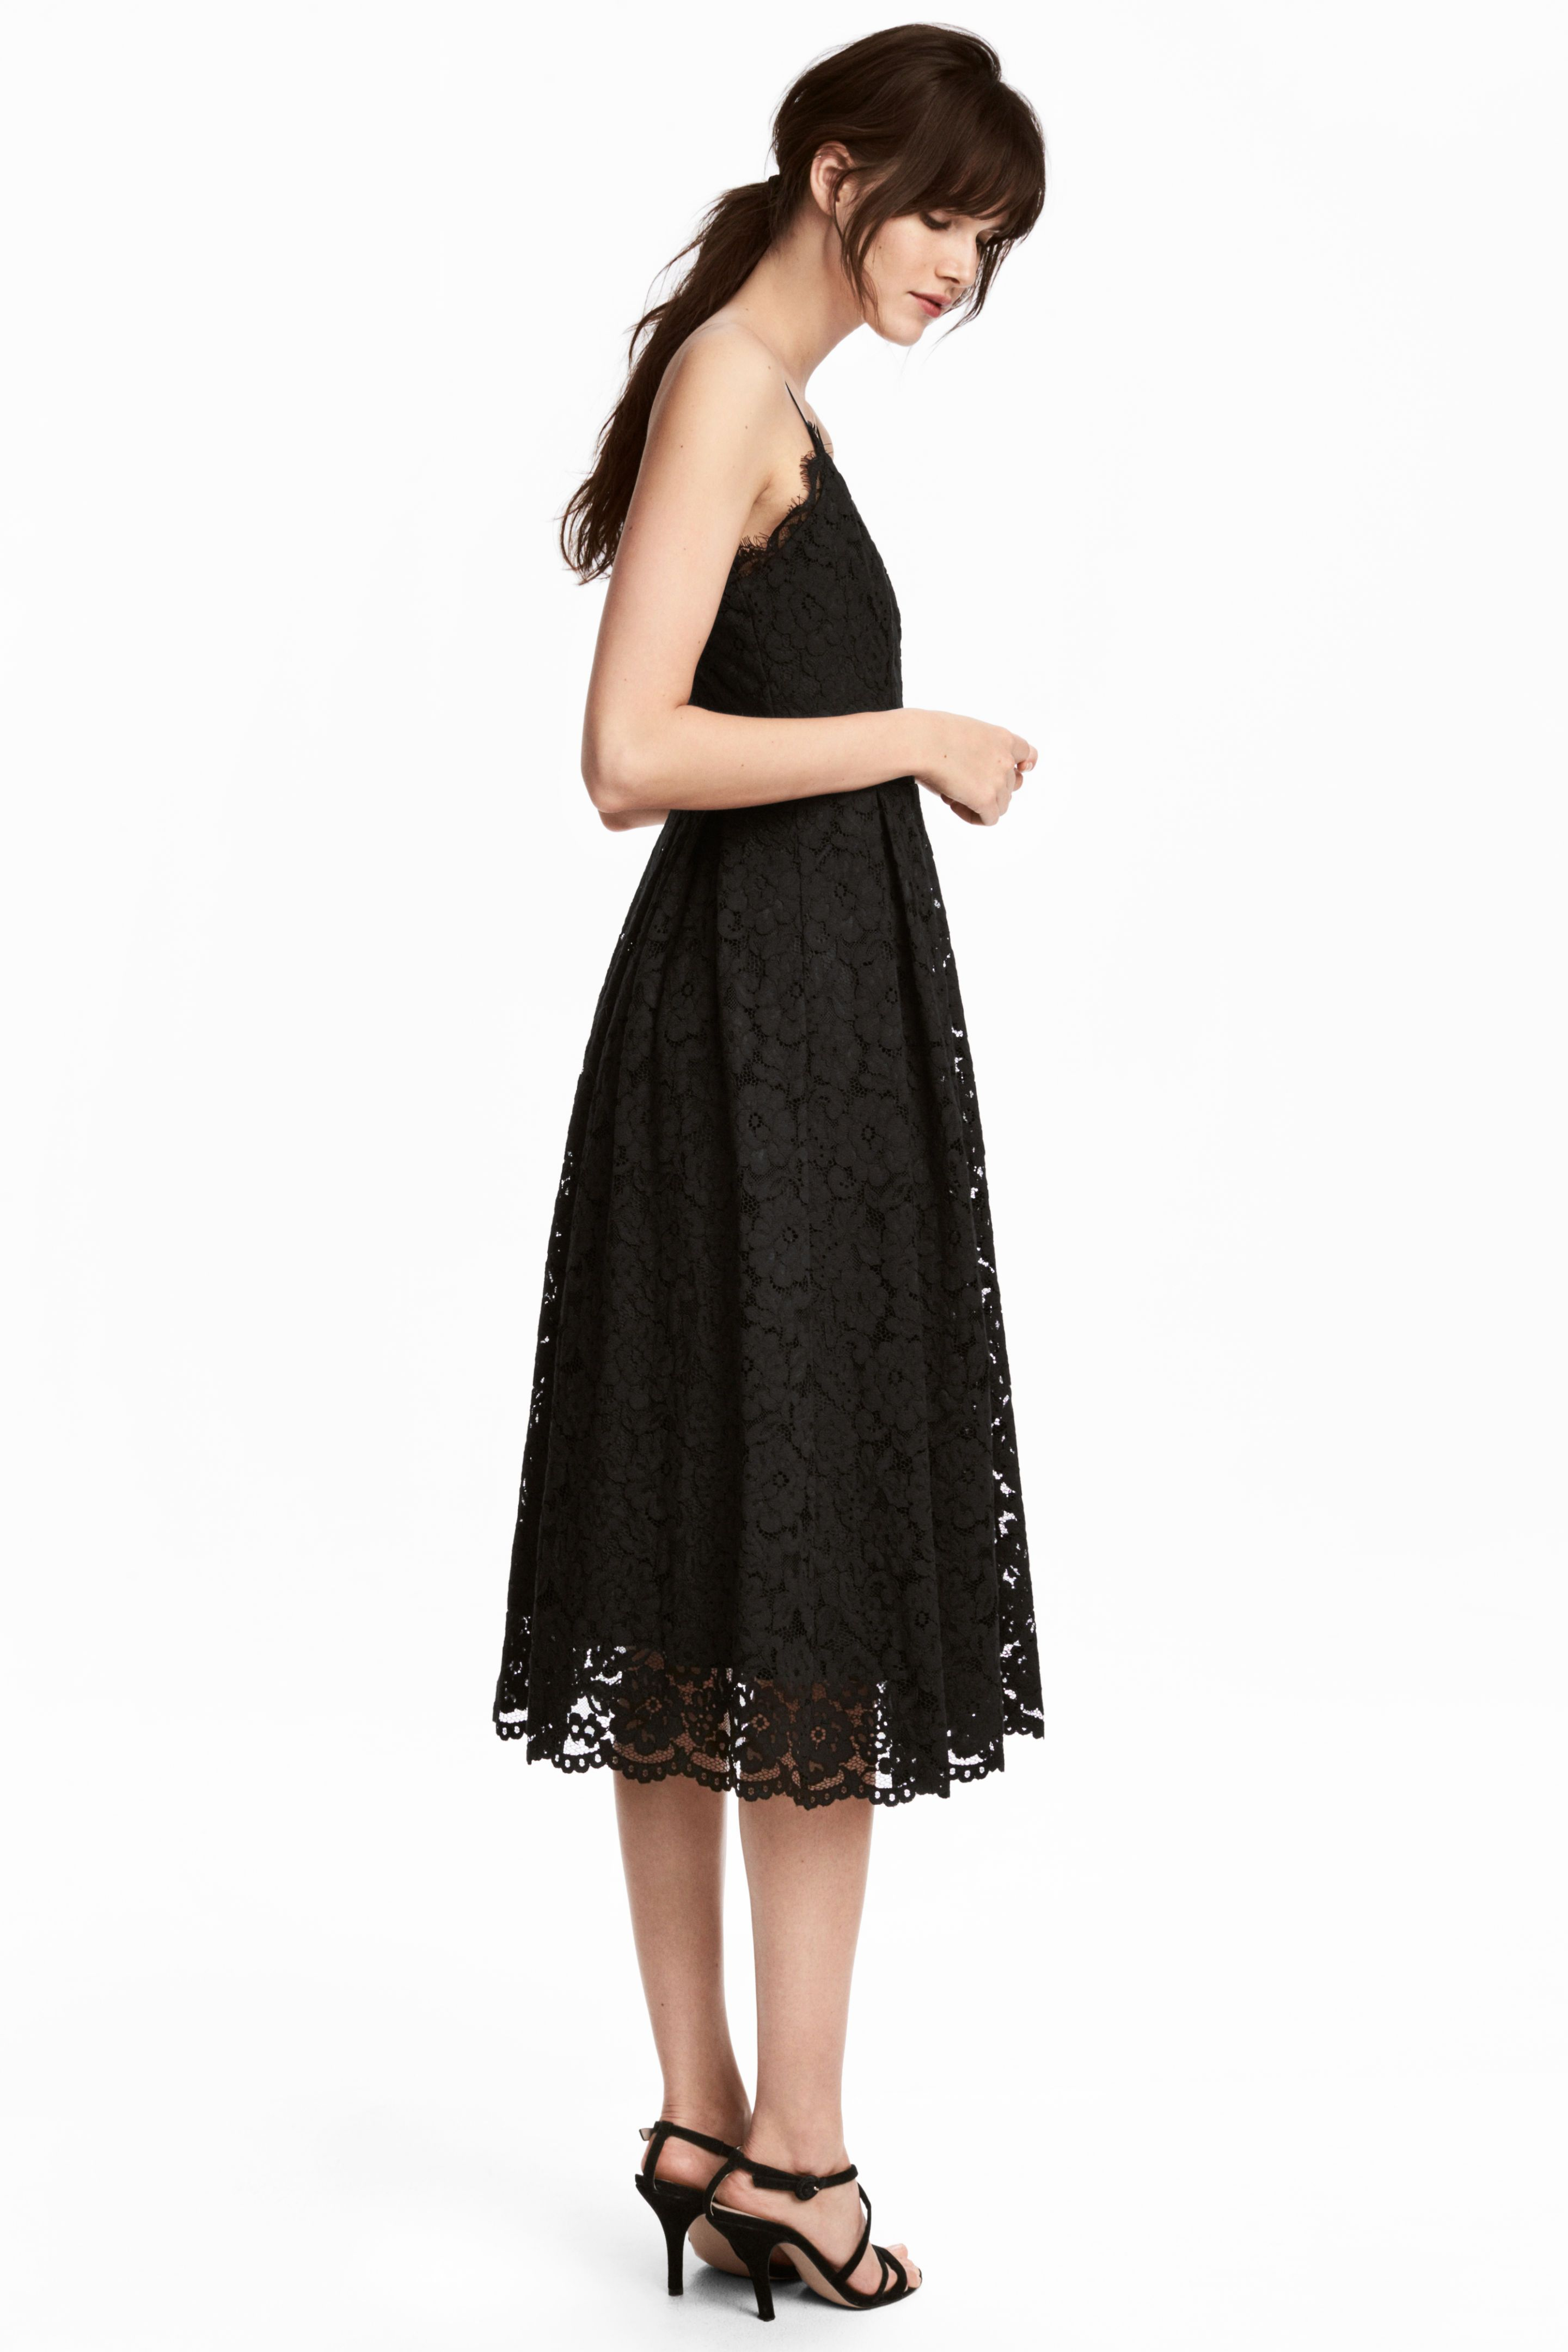 Merveilleux Black Wedding Guest Dresses